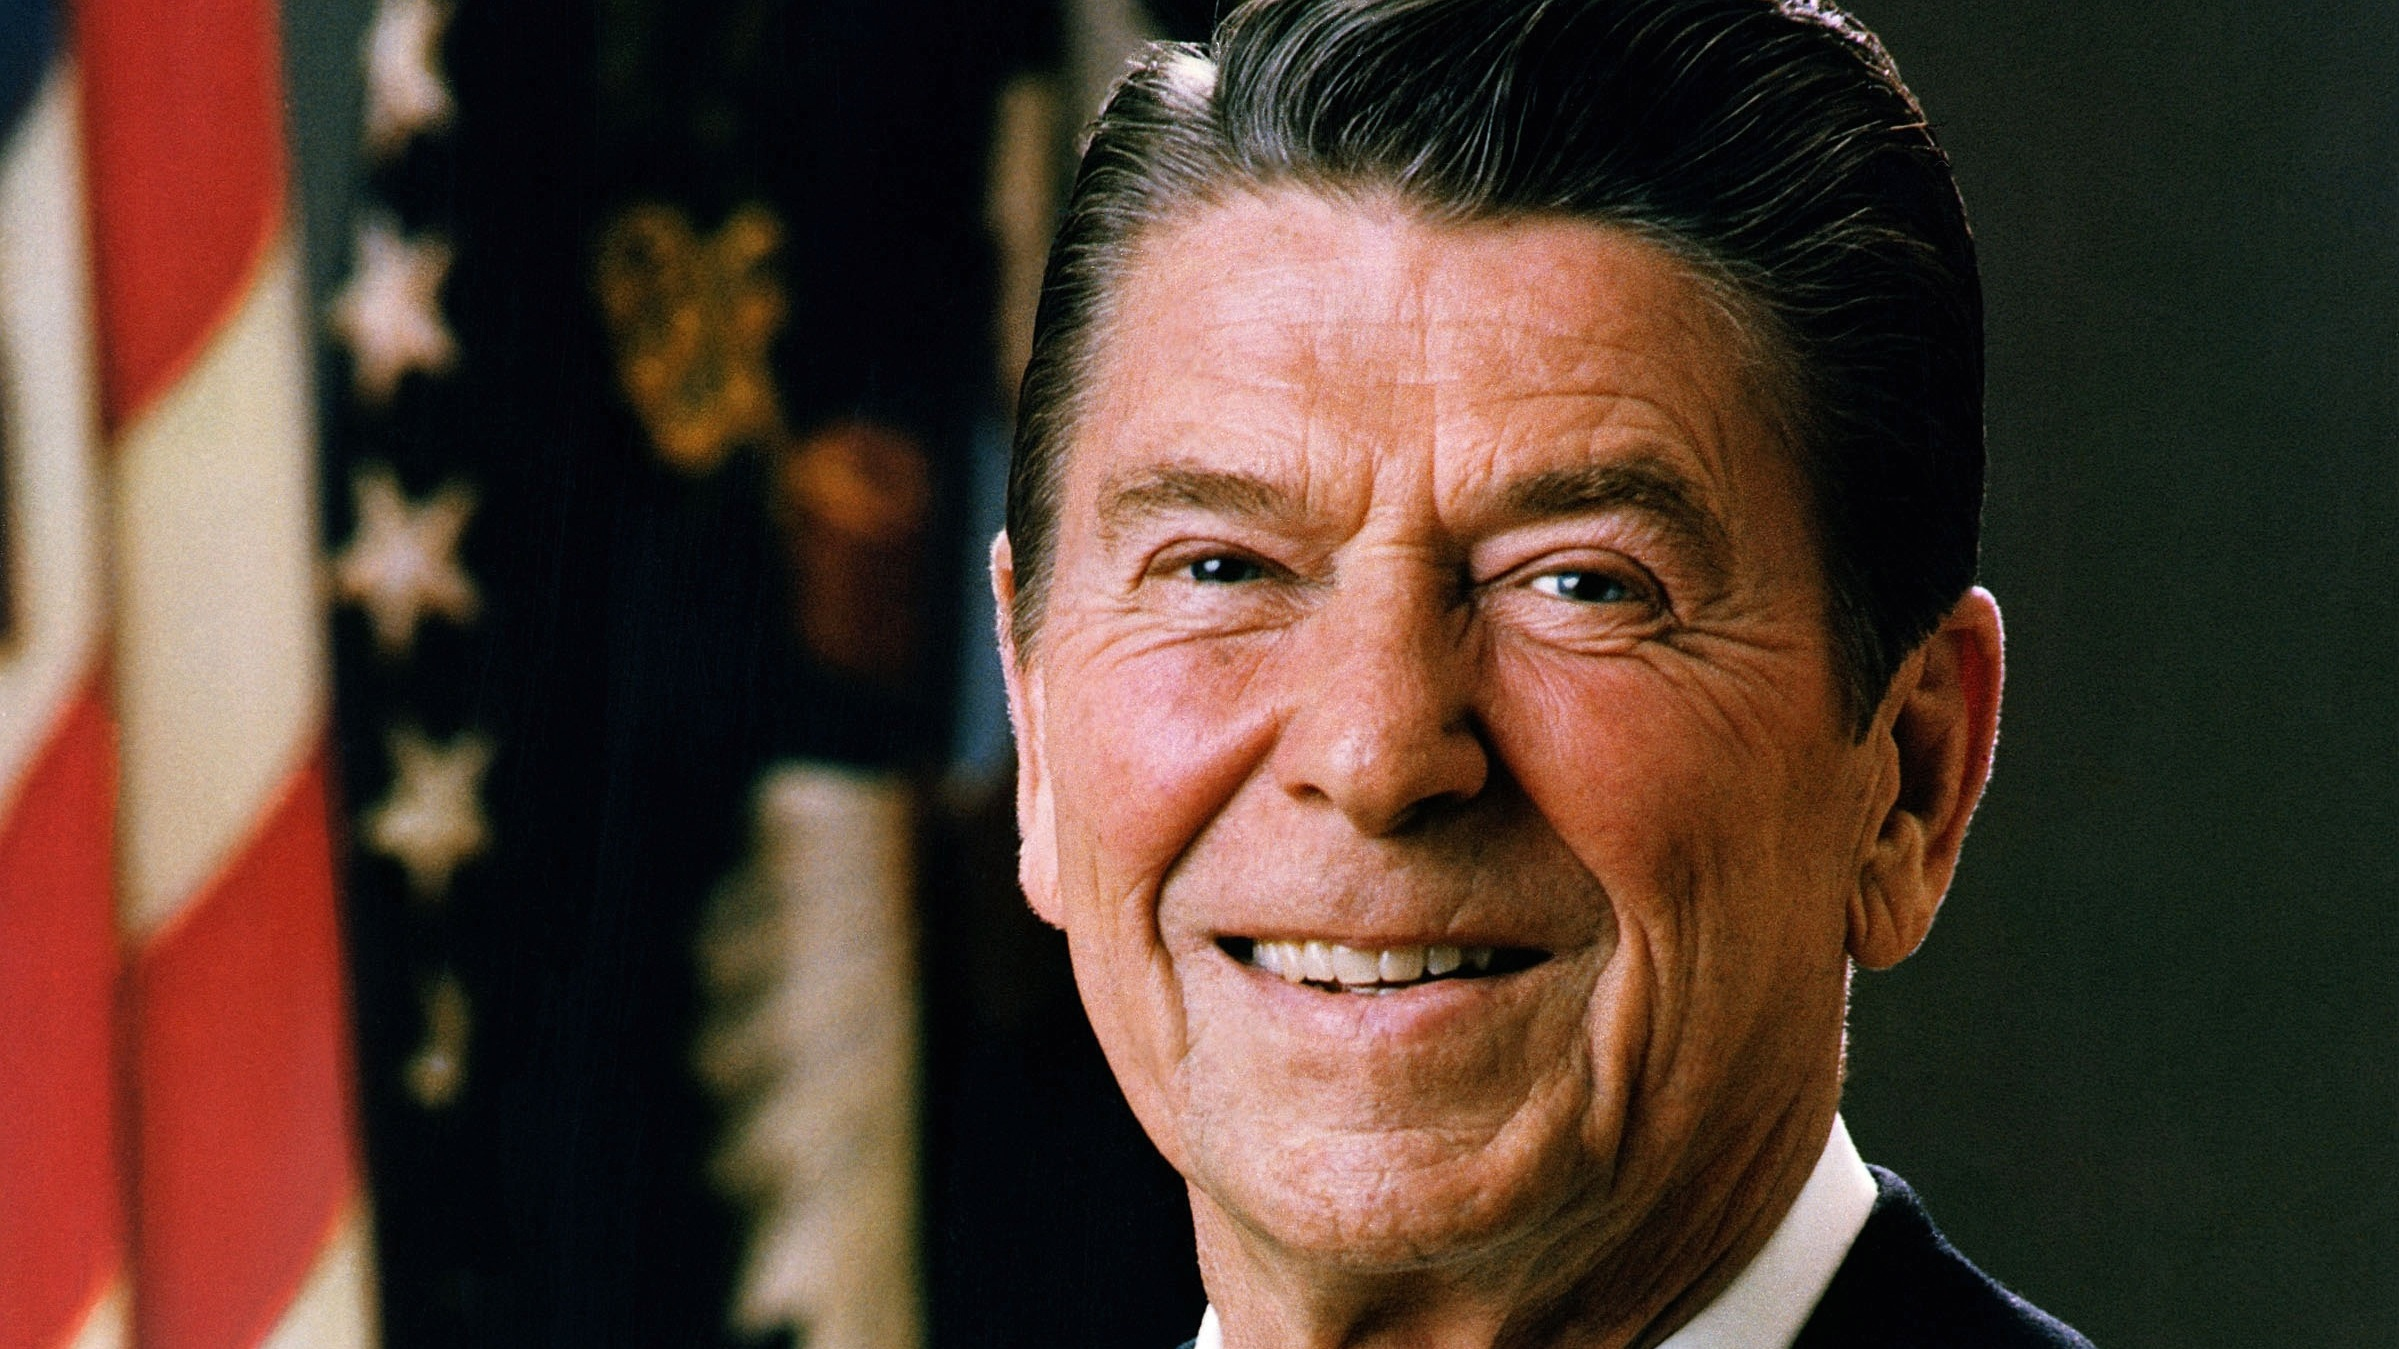 1980 - 2001:Rise of Conservatism -